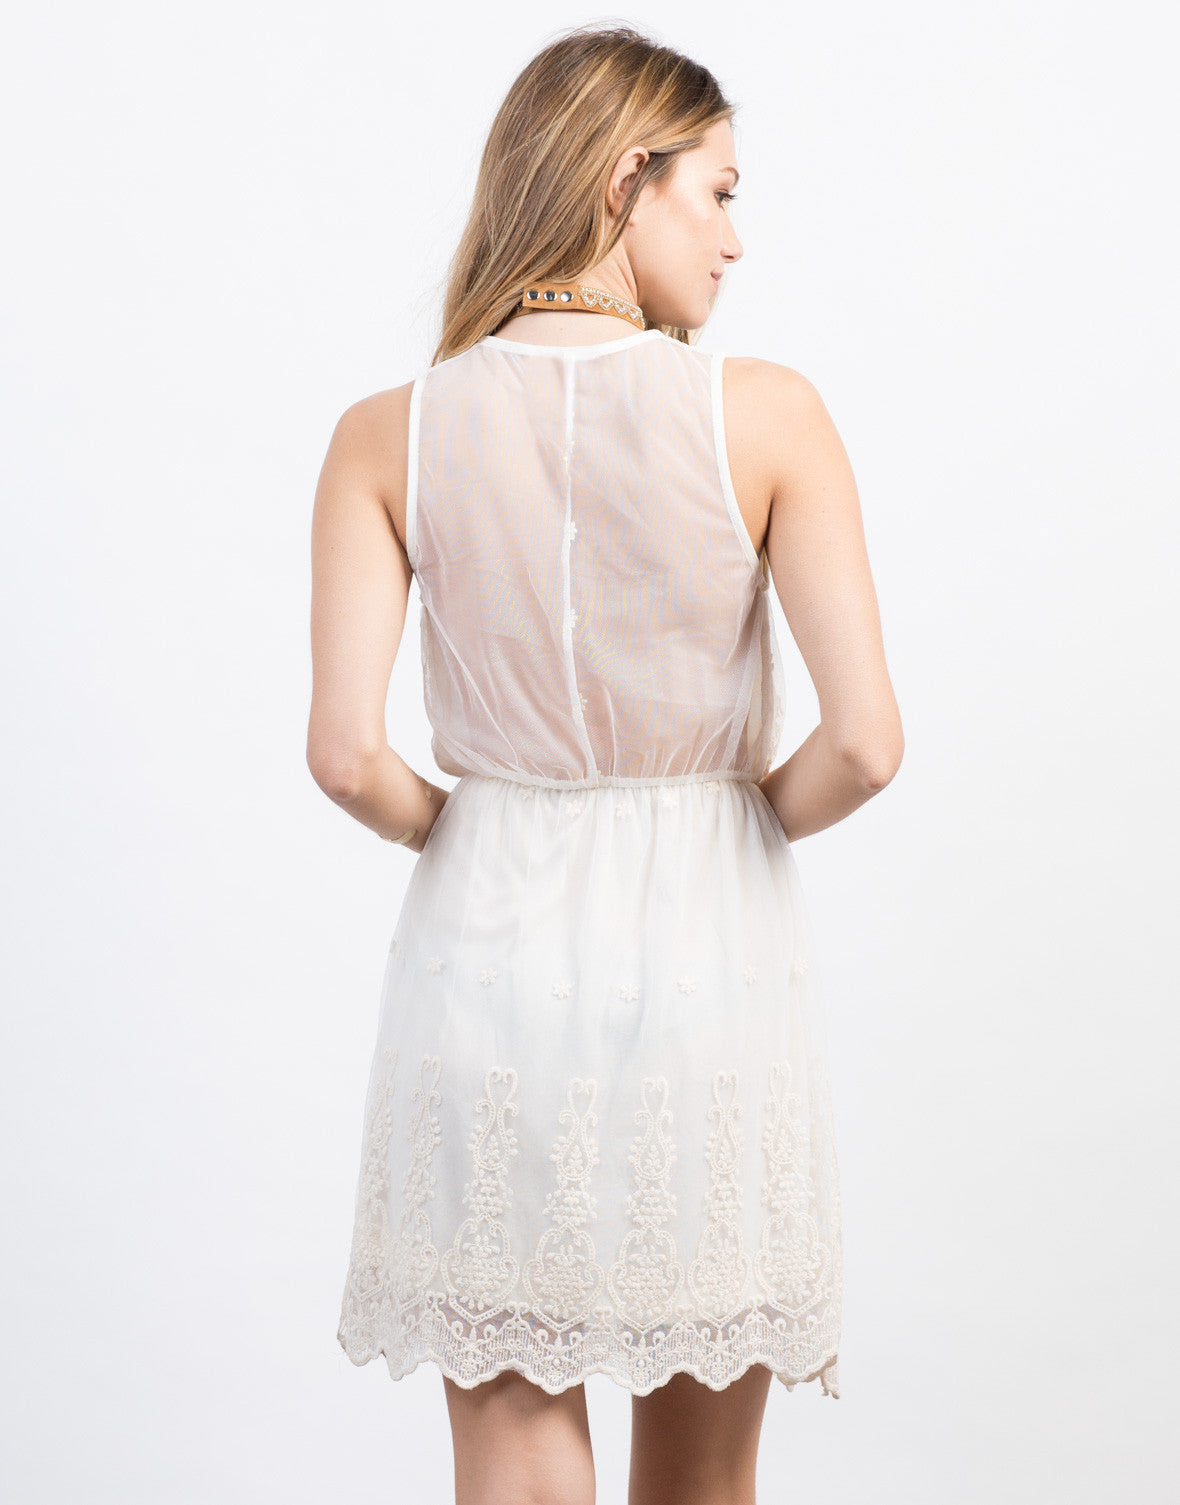 Back View of Little Lacey Dress